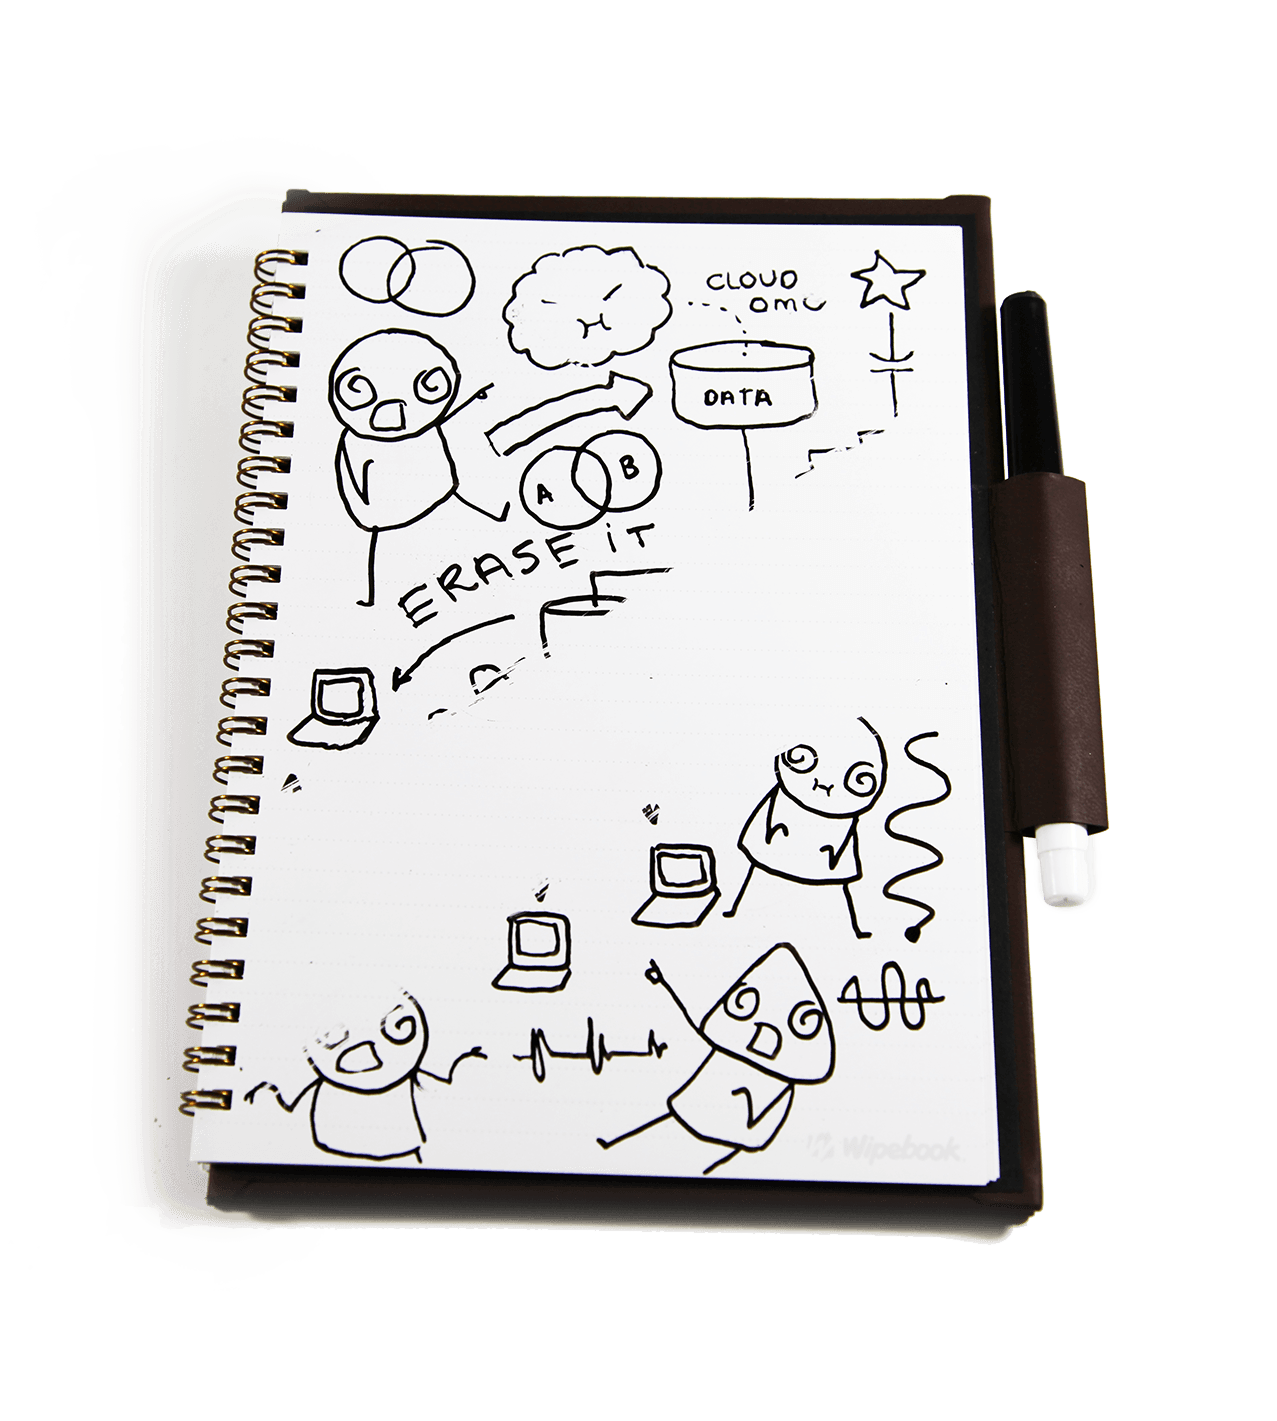 picture stock Drawing randomizer notebook. Mini wipebook pro prolist